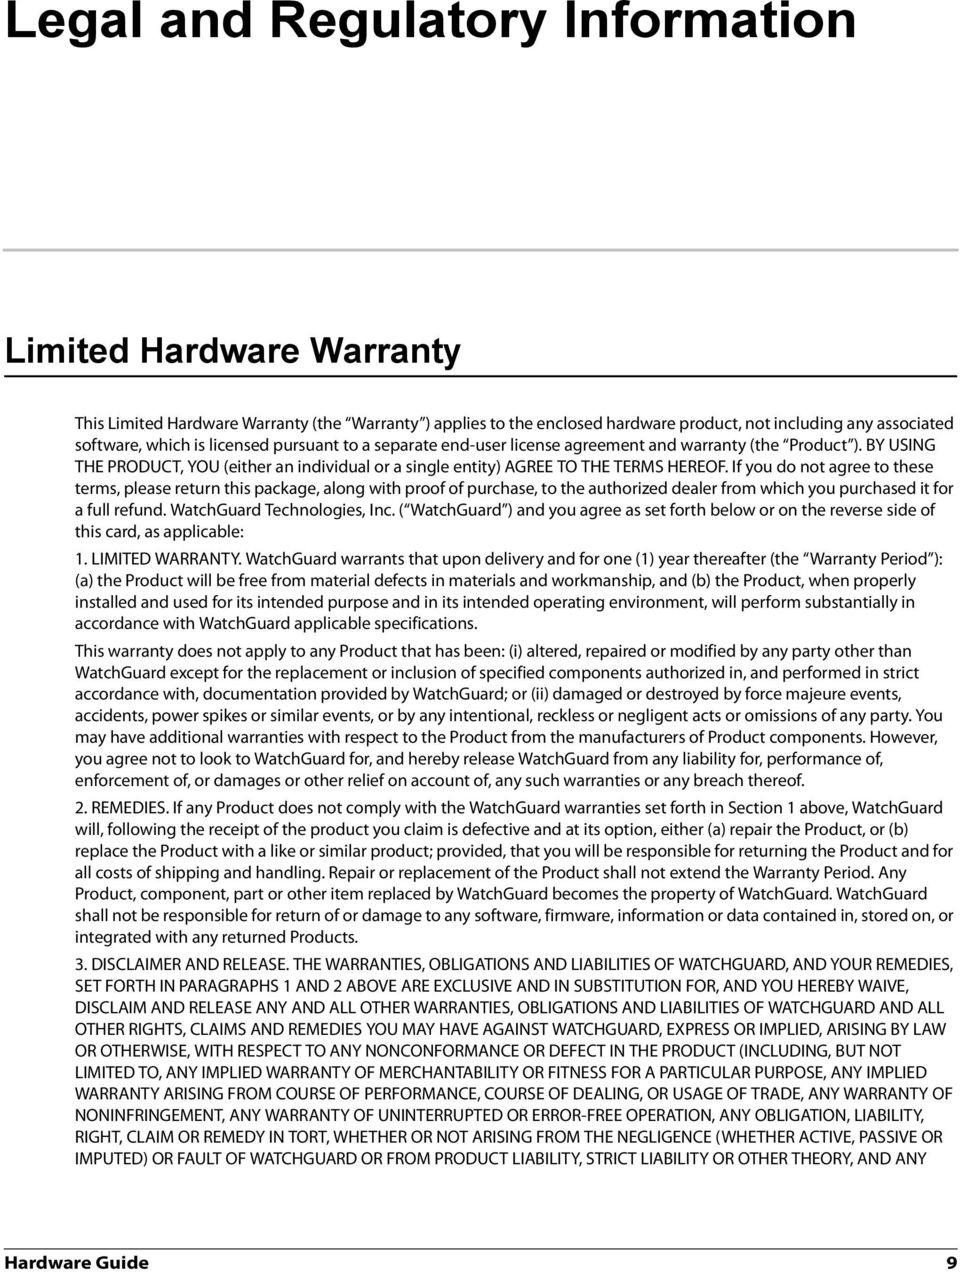 If you do not agree to these terms, please return this package, along with proof of purchase, to the authorized dealer from which you purchased it for a full refund. WatchGuard Technologies, Inc.